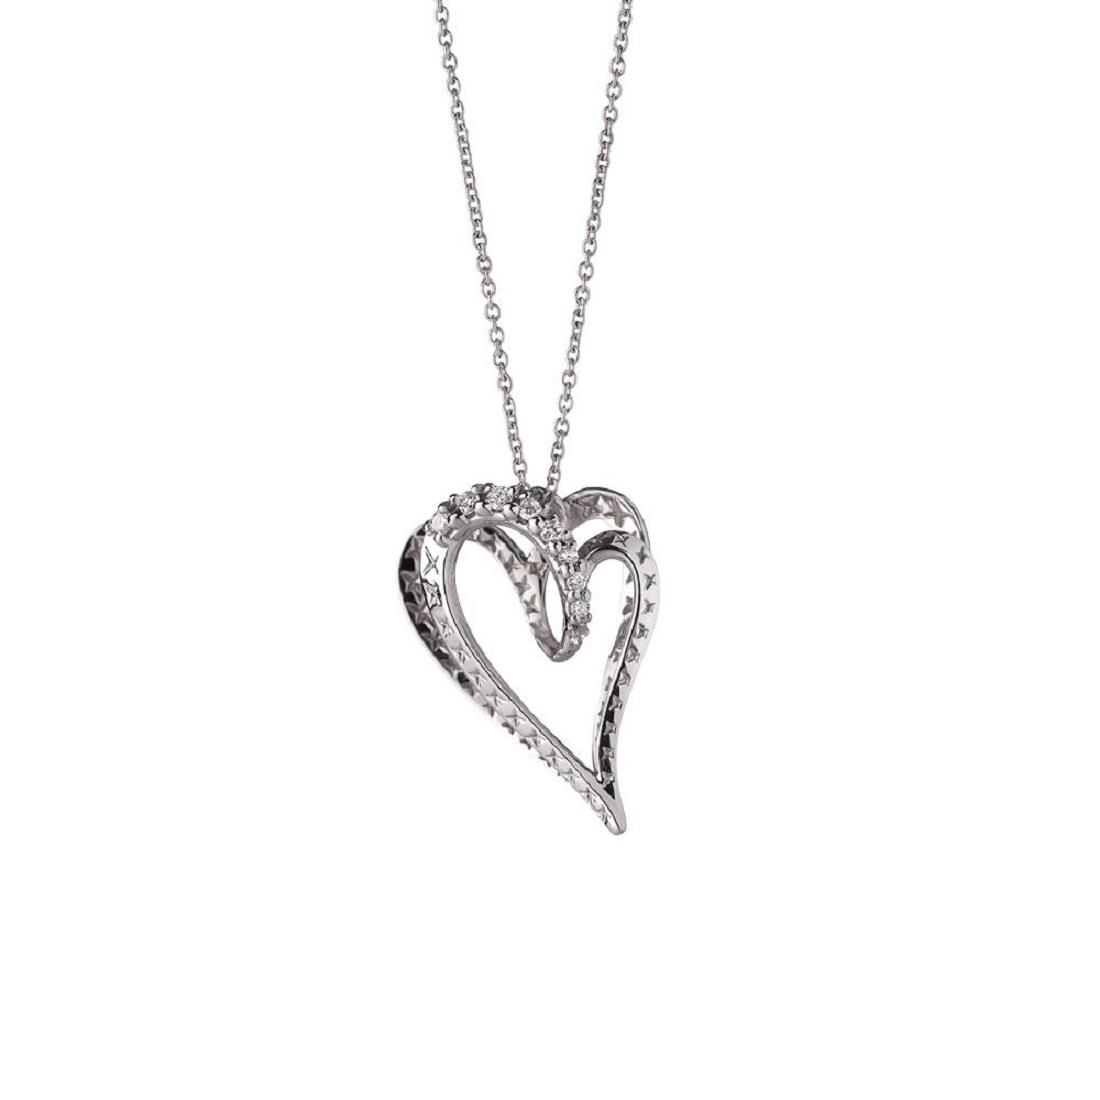 Small heart pendant in 18 kt white gold with 0,04 ct diamonds  